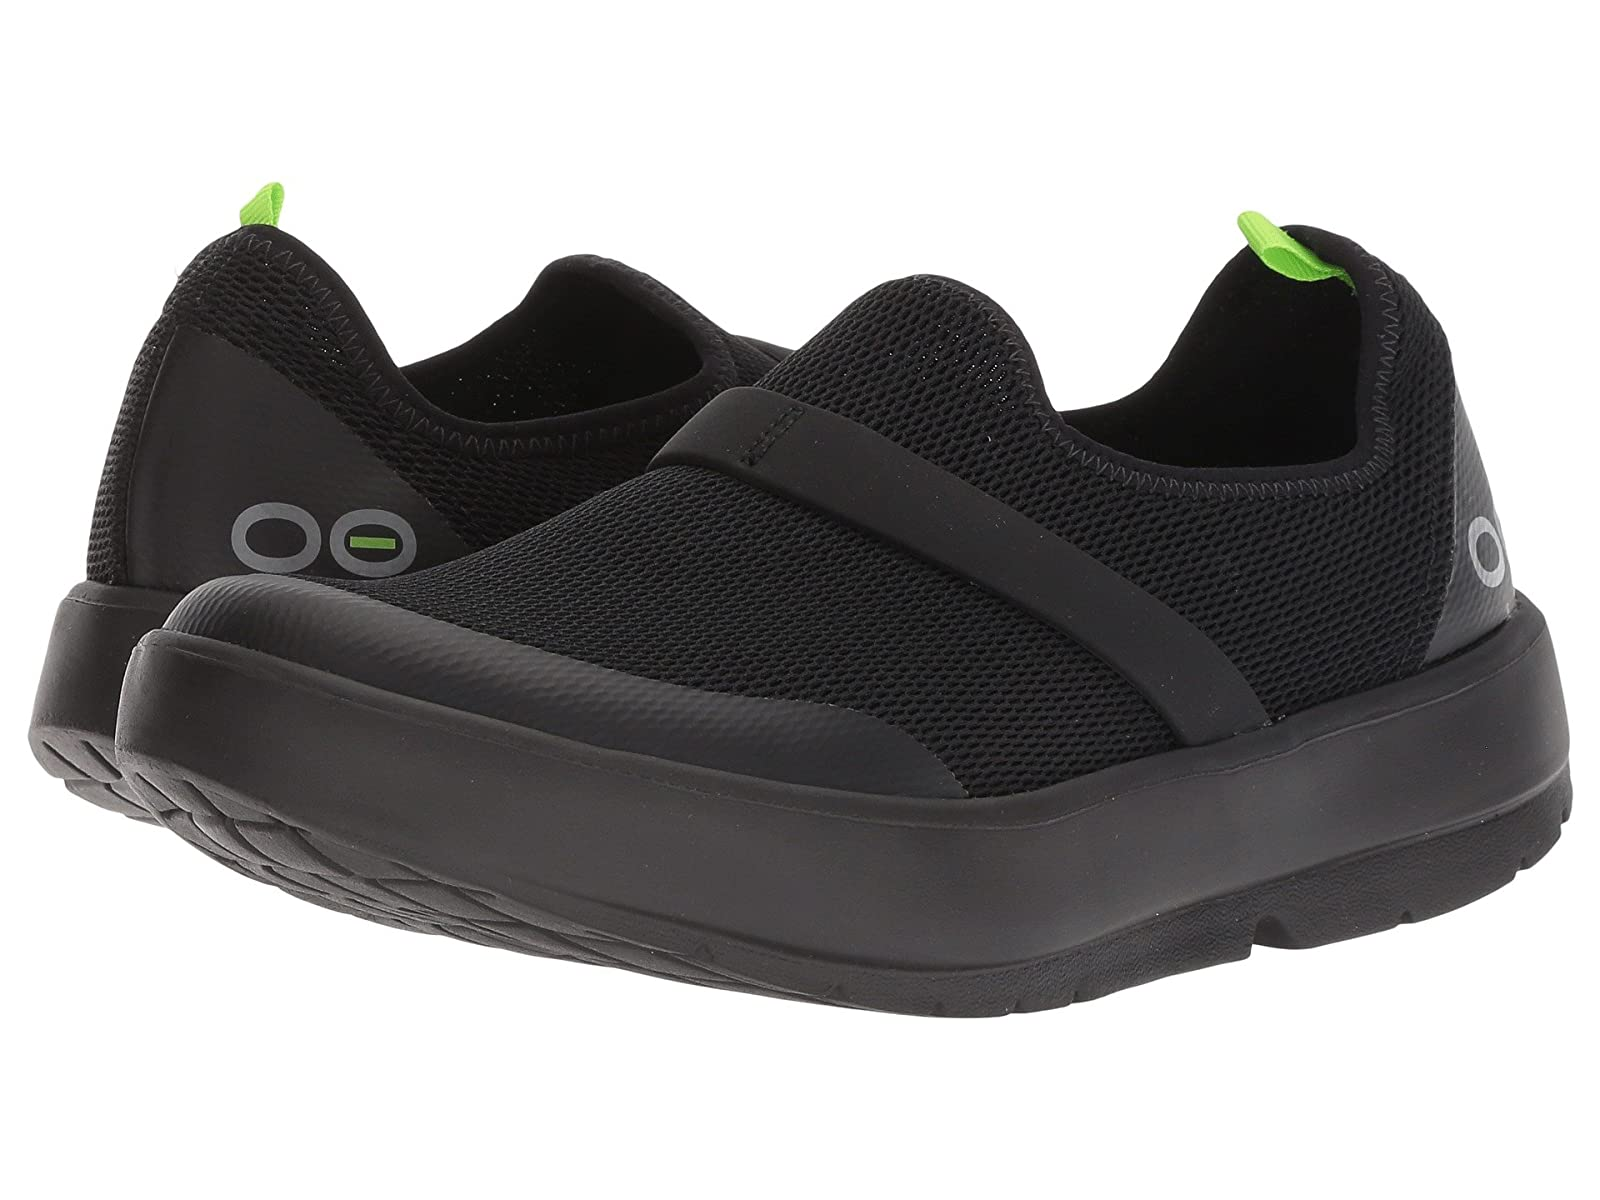 OOFOS OomgAtmospheric grades have affordable shoes